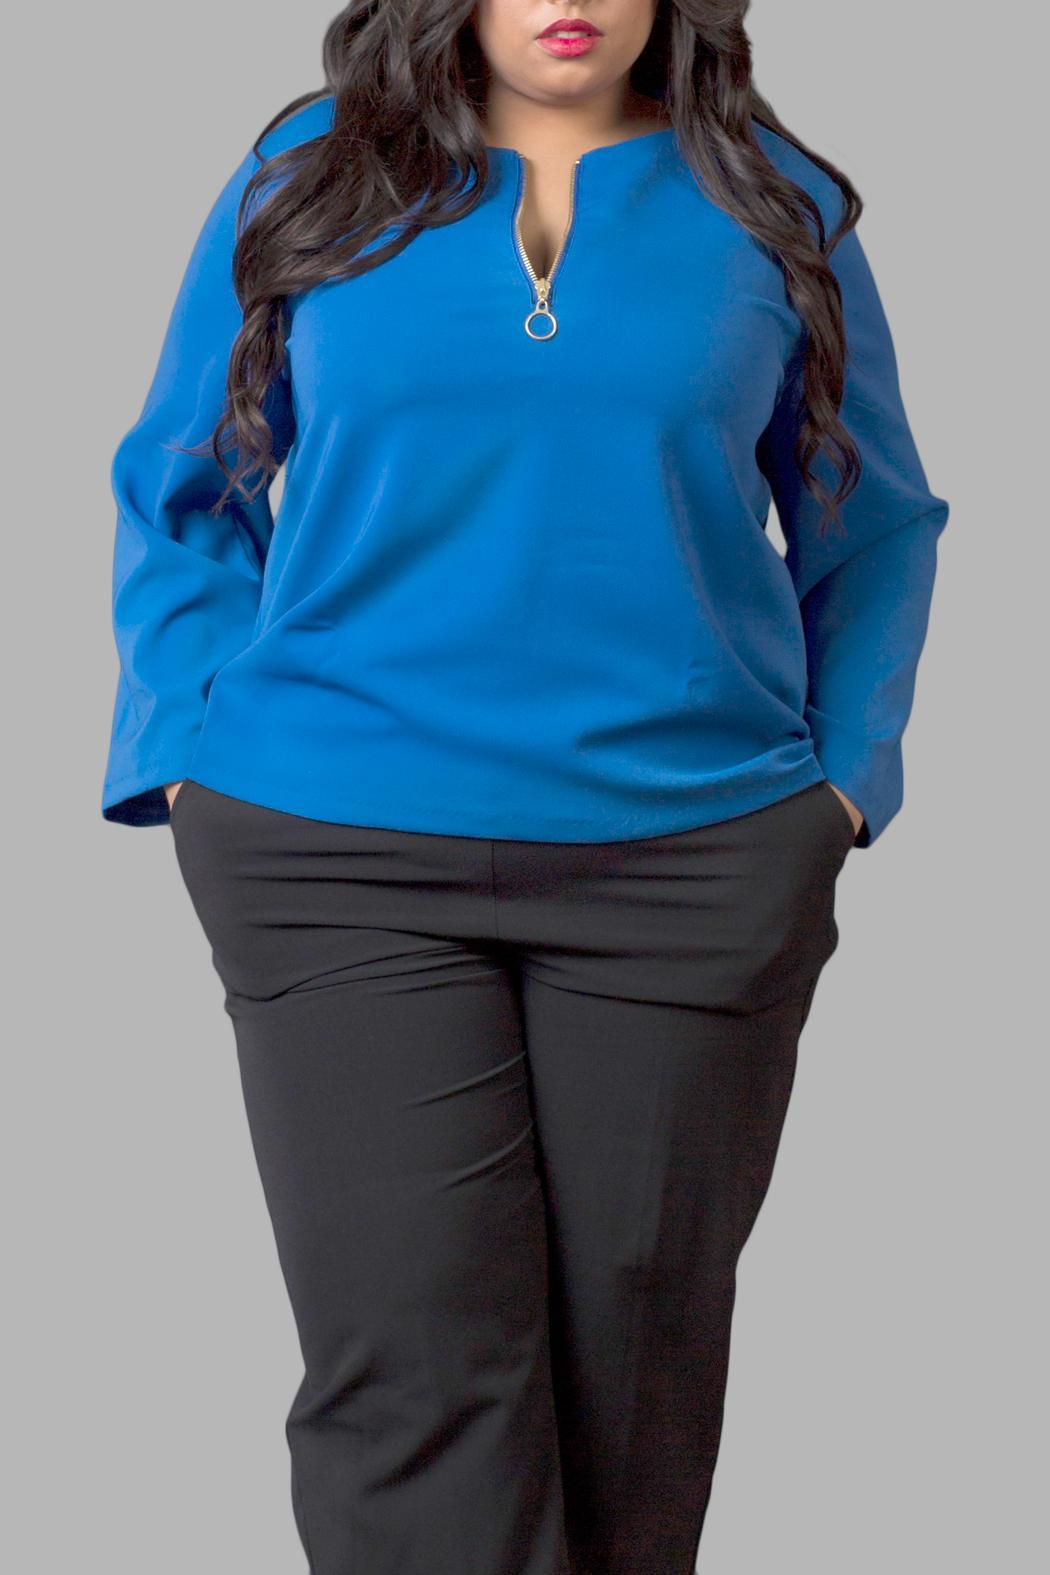 Yona New York Blue Long Sleeve Top - Front Cropped Image